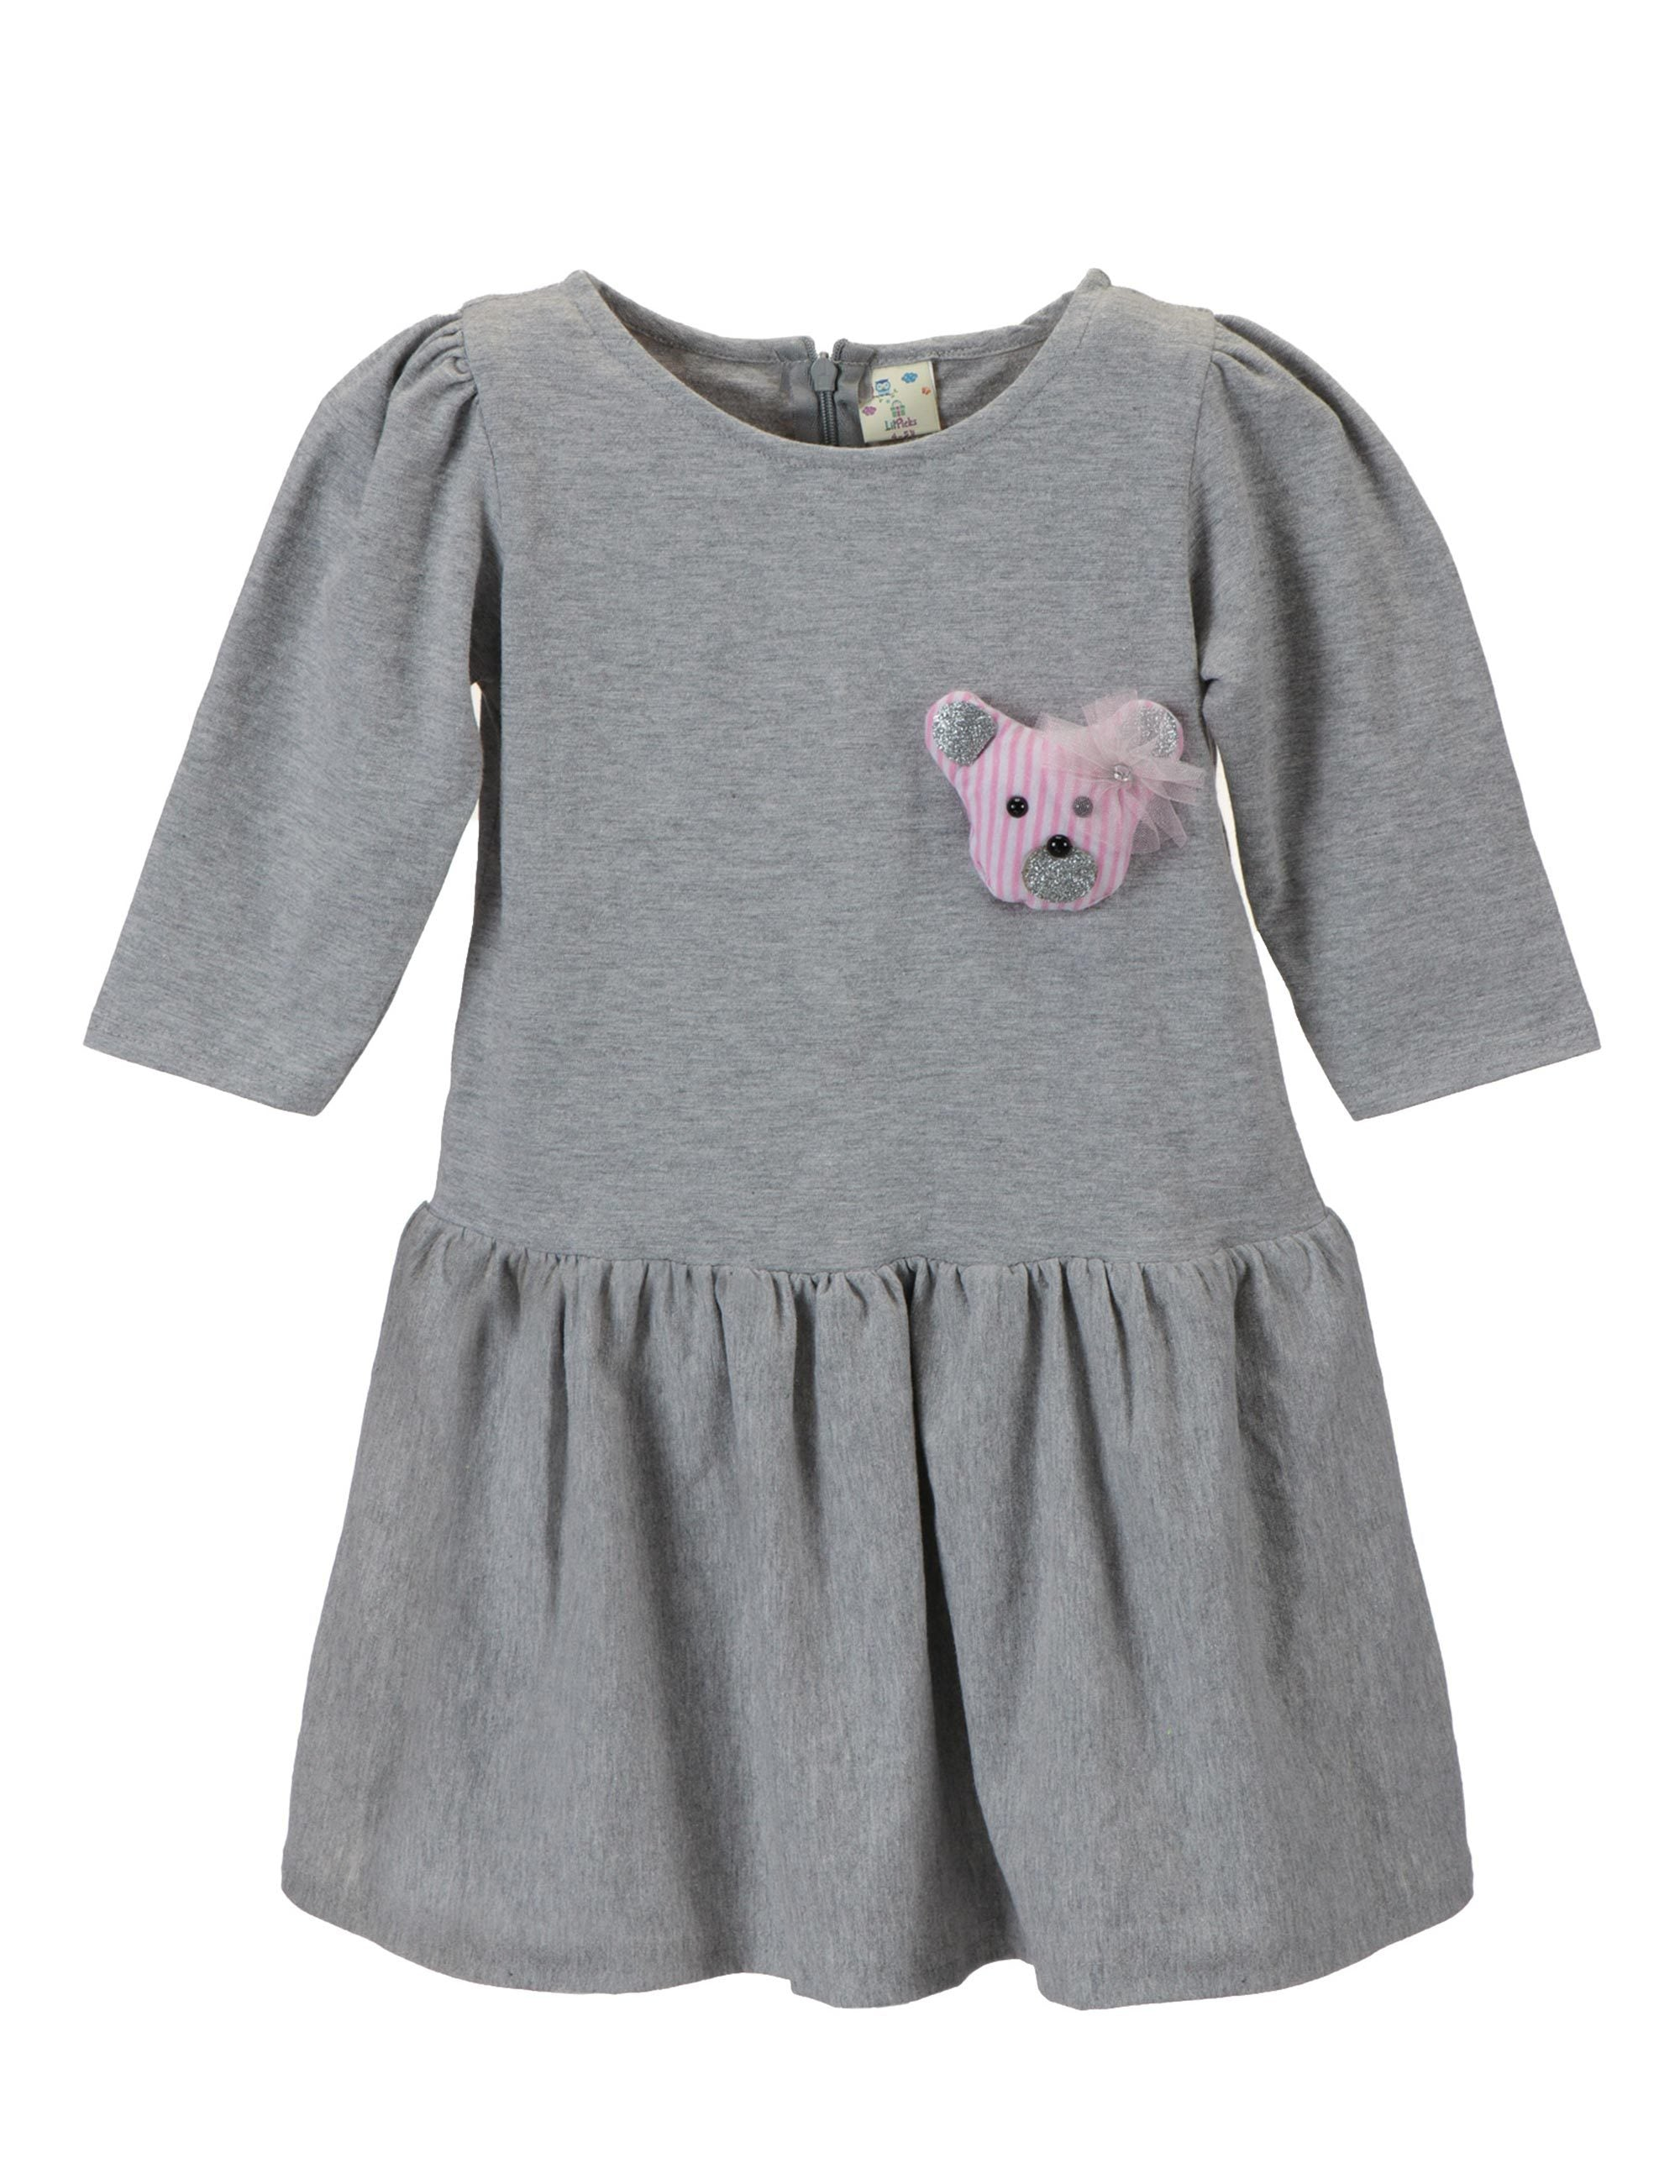 Grey Teddy Patch Dress for Girls